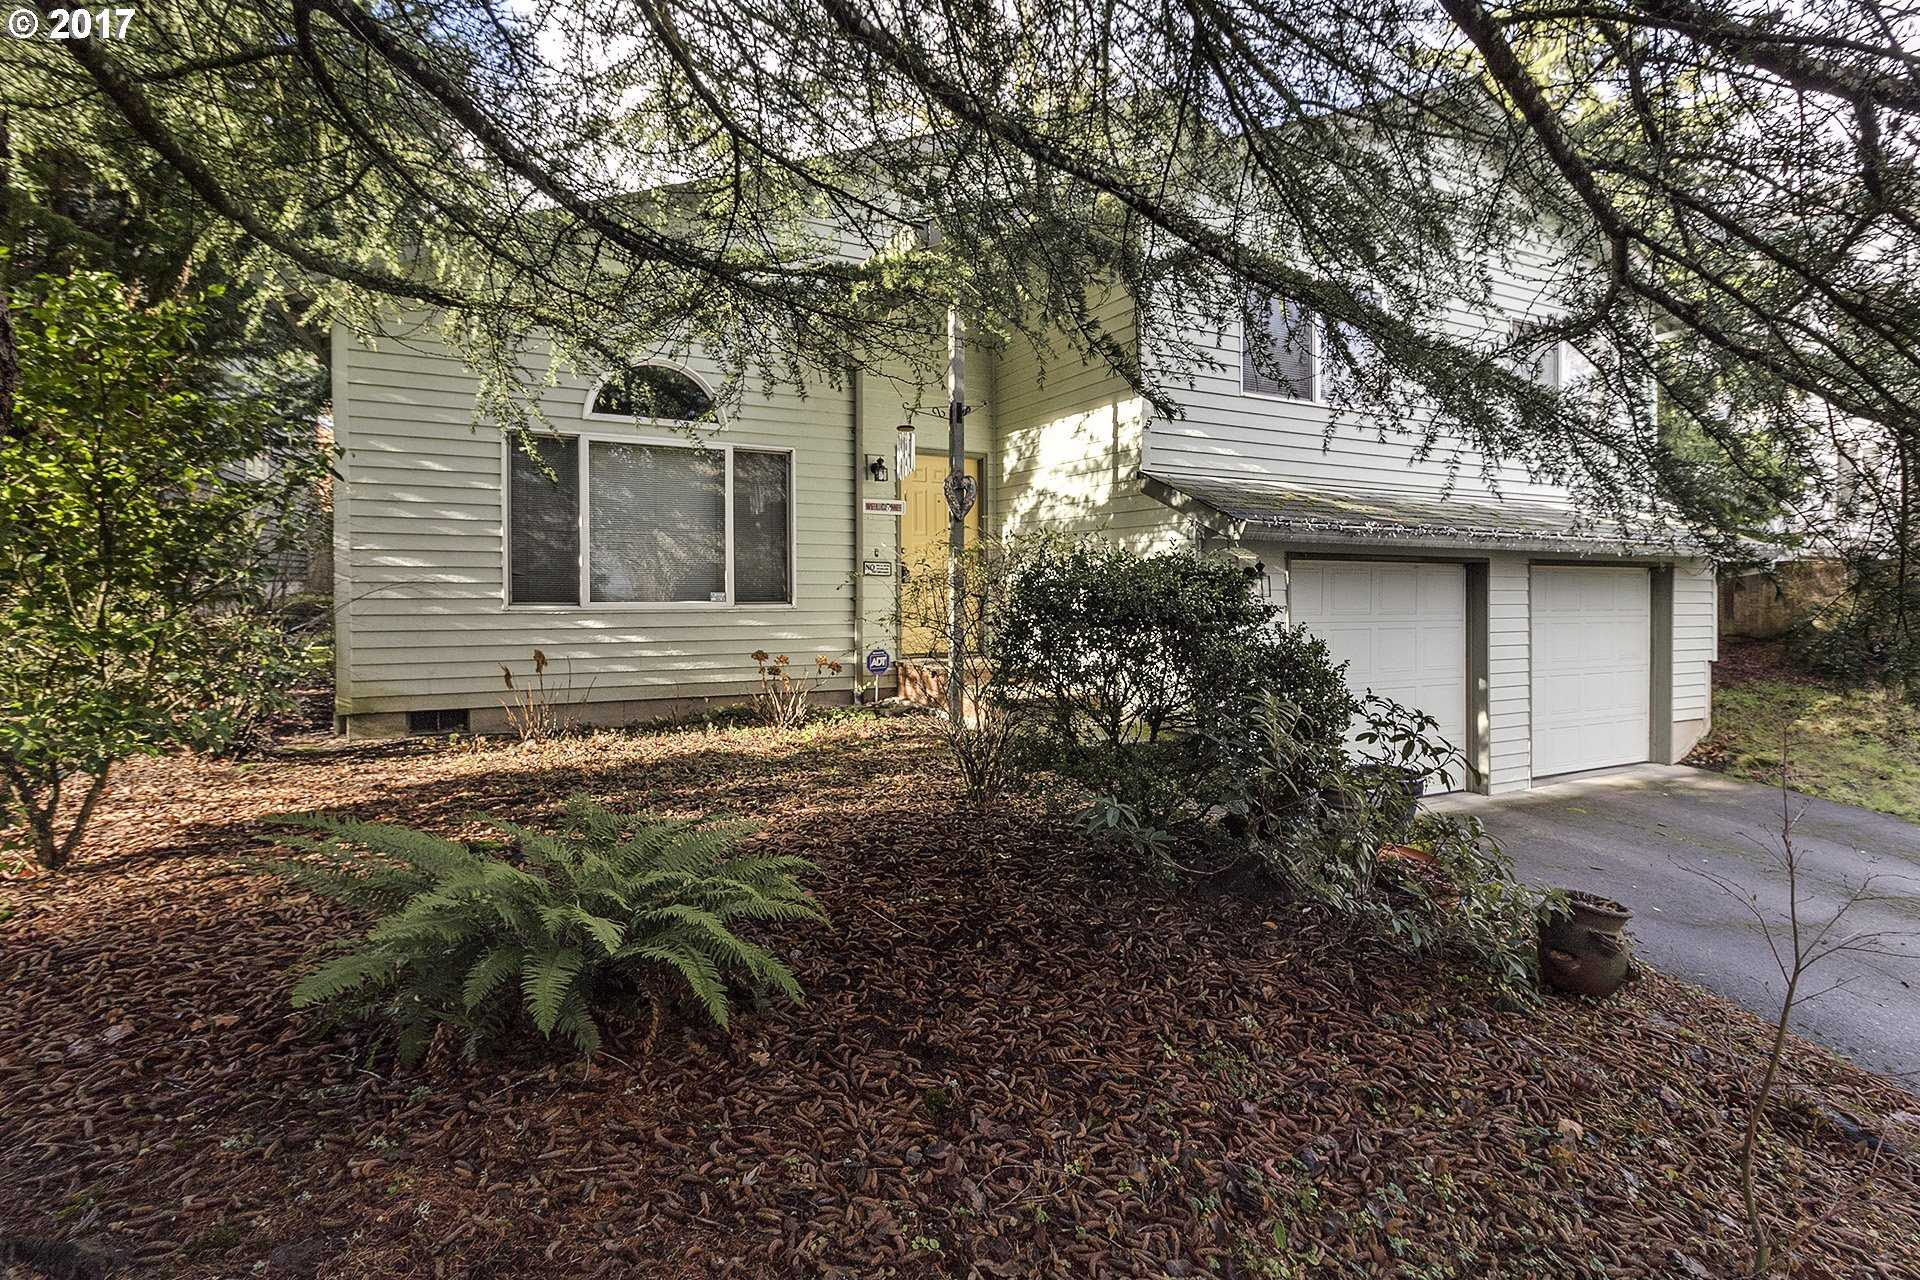 Mls 17287470 875 Ne 67th Ave Hillsboro Or 97124